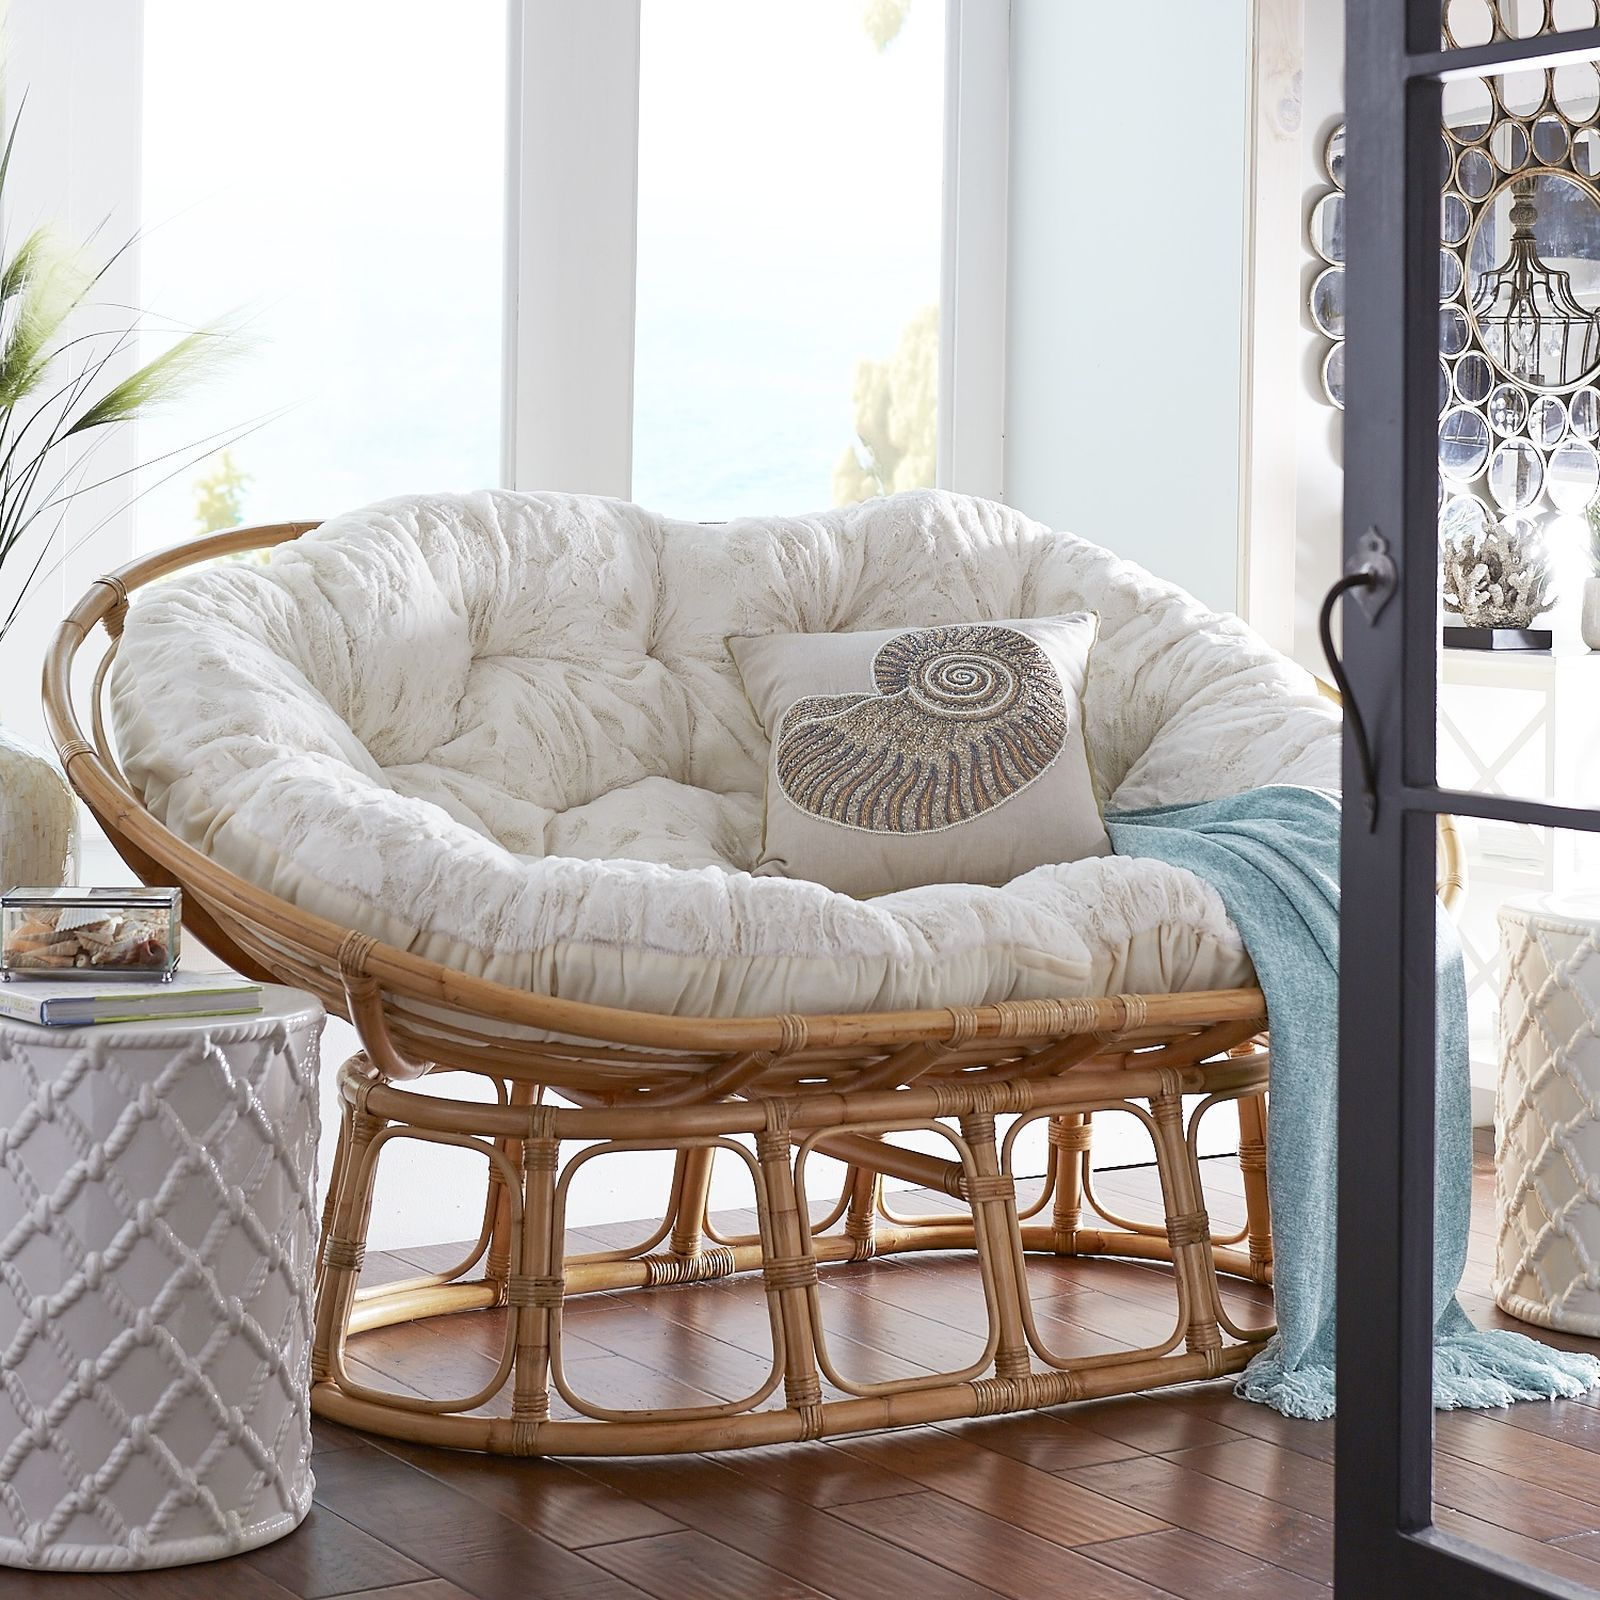 Attractive All The Appeal And Comfort Of Our Iconic Papasan Chairu2014and Then Some. With  Room For Two, Itu0027s Twice As Nice With A Double Bowl Frame.